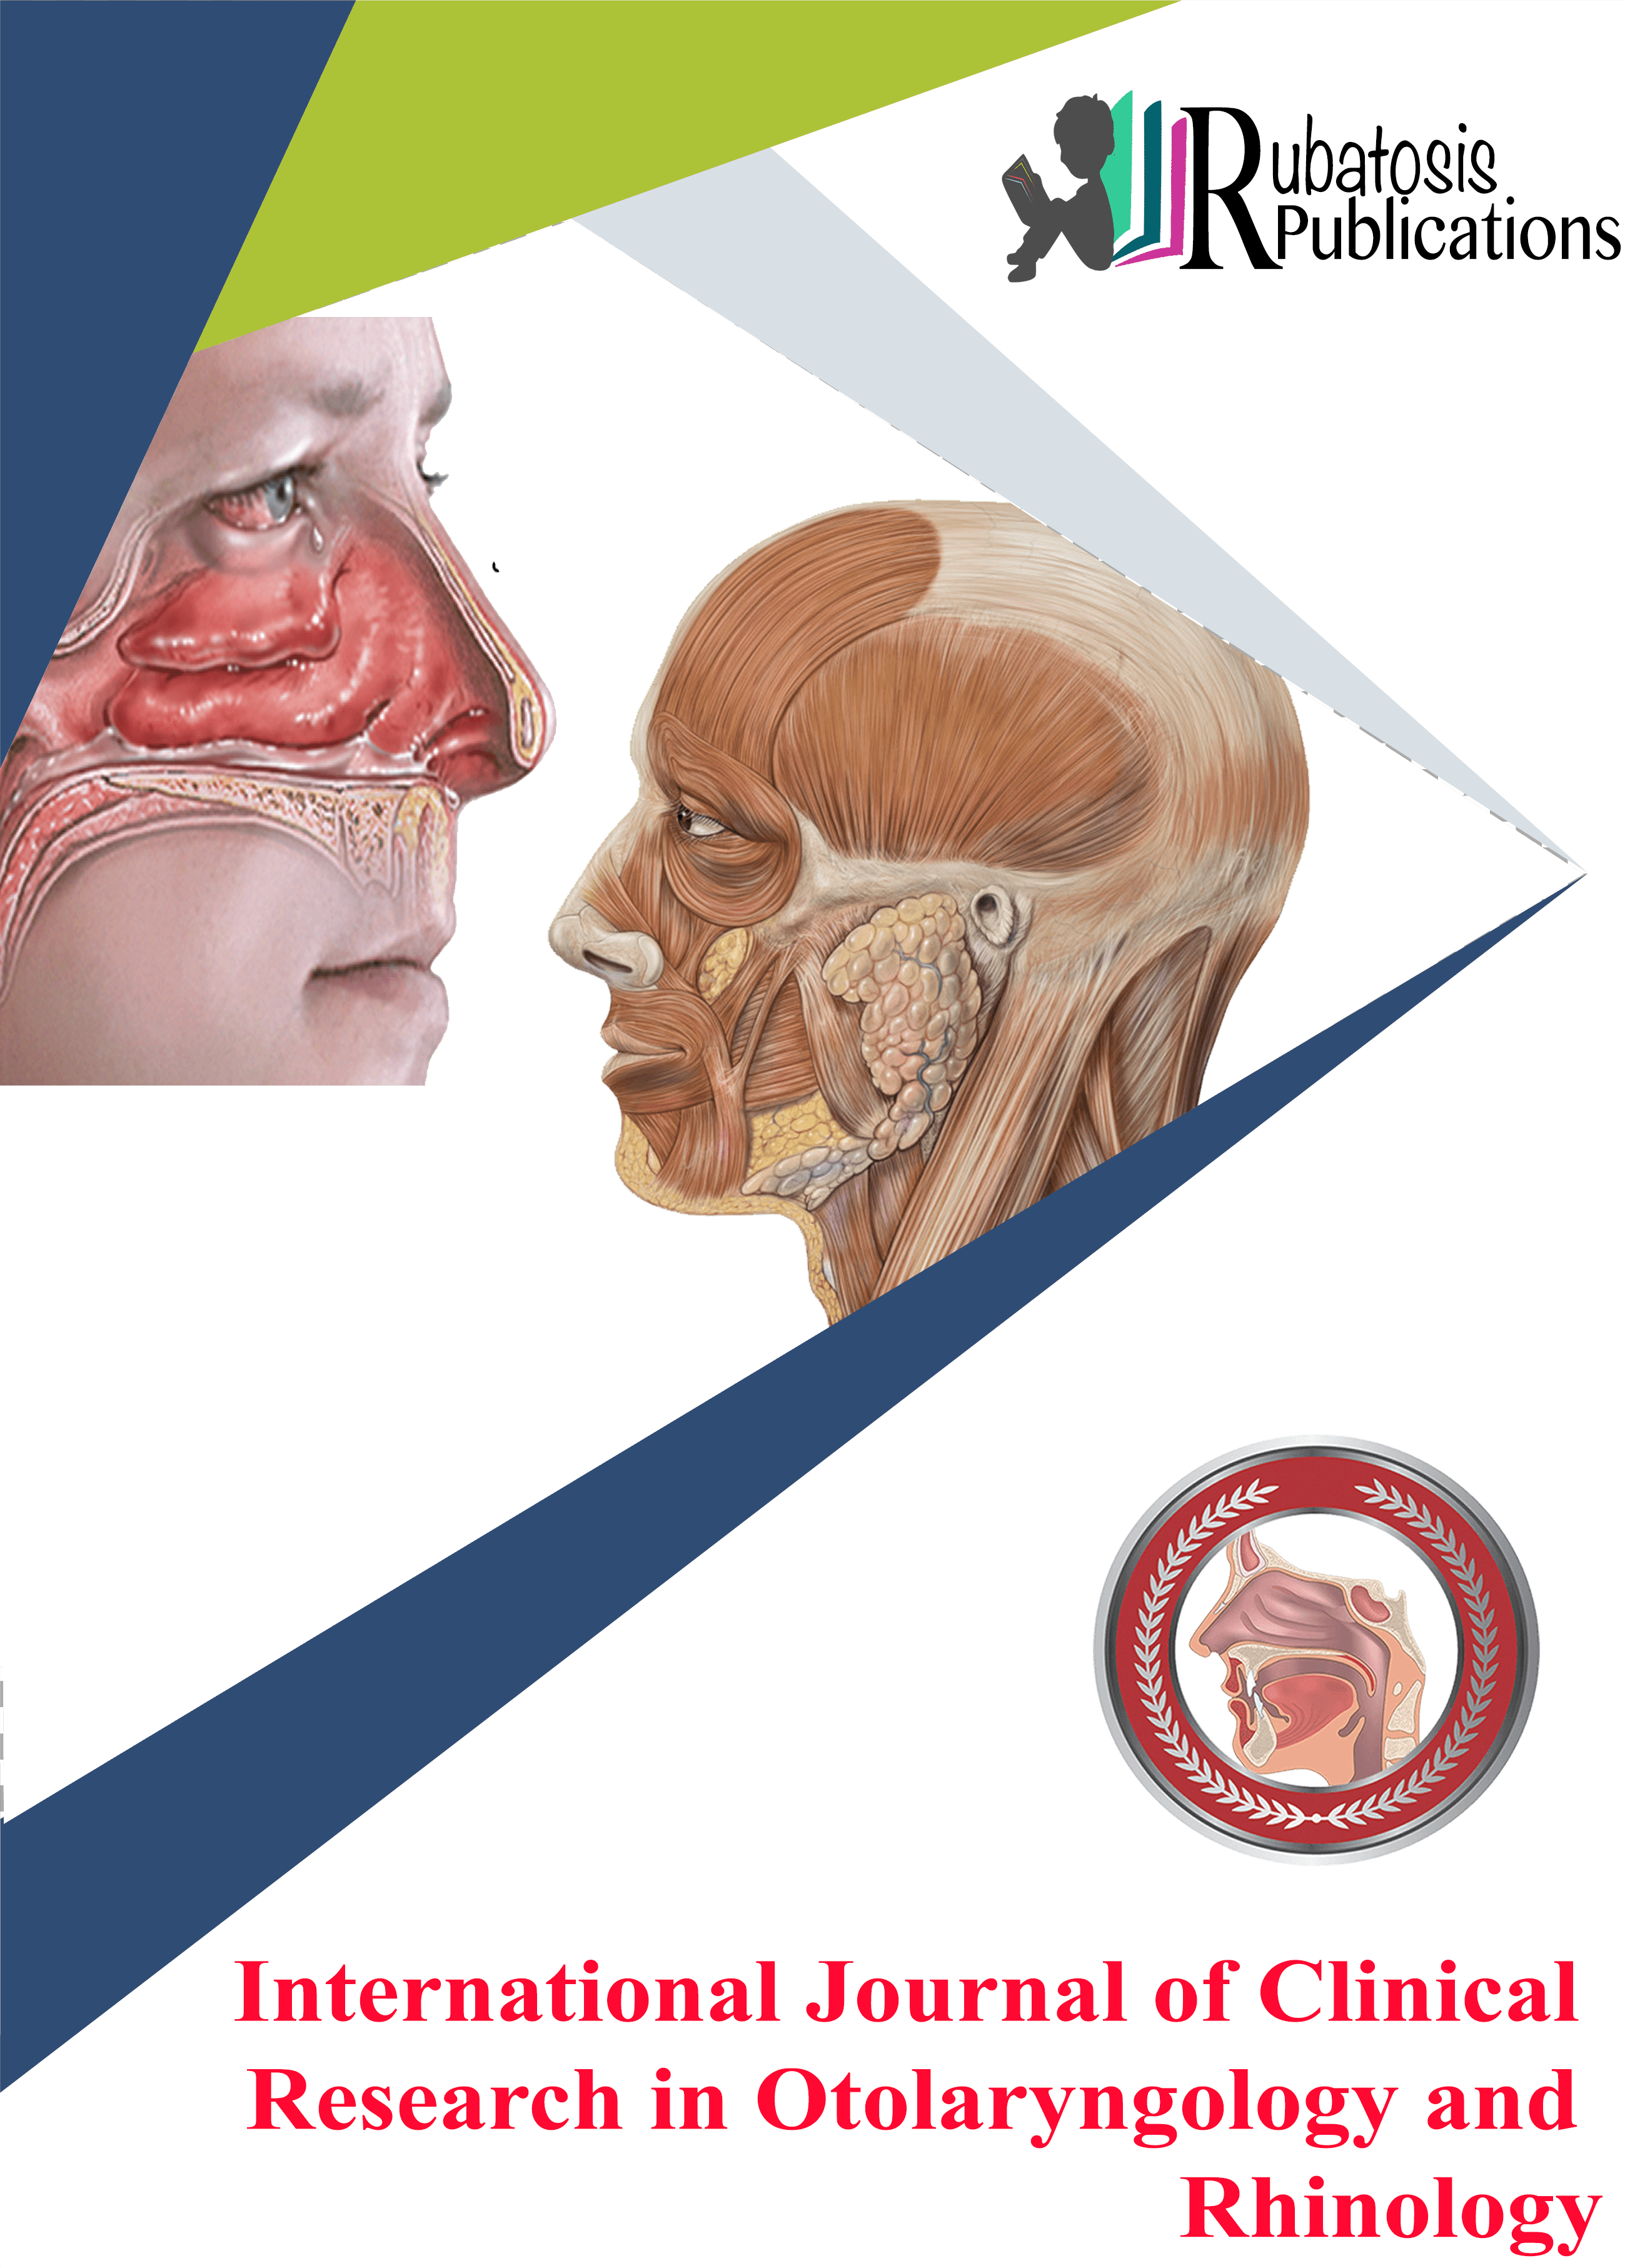 International Journal of Clinical Research in Otolaryngology and Rhinology